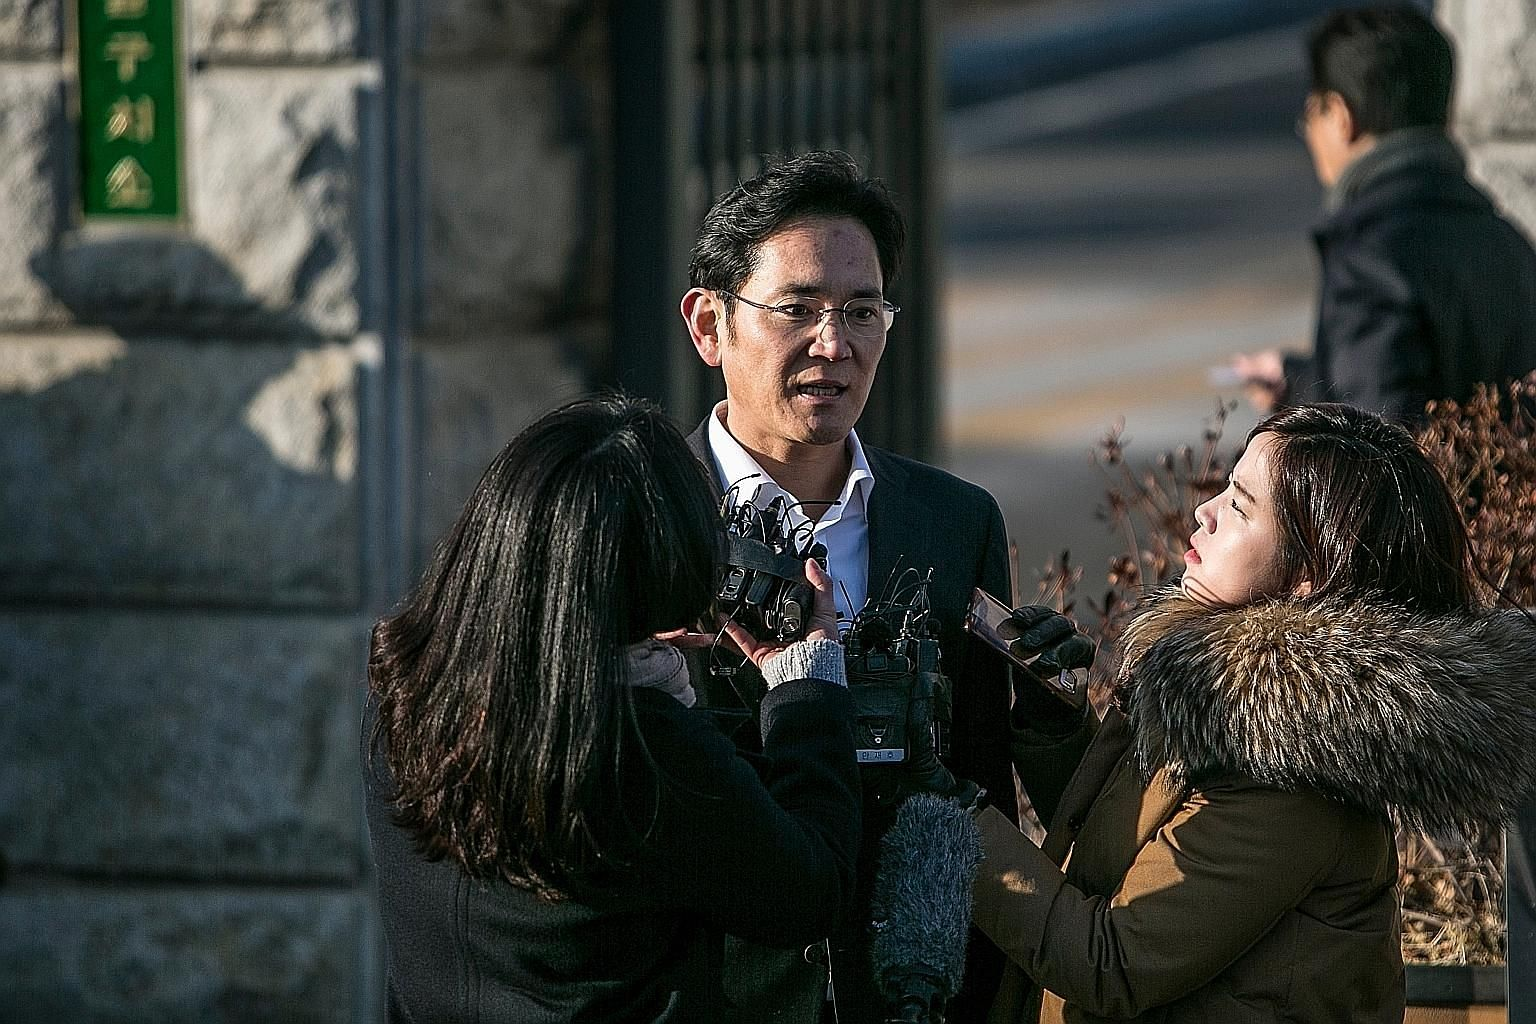 Mr Lee Jae Yong, vice-chairman of Samsung Electronics, speaking to the media after his release from the Seoul Detention Centre in South Korea last Monday.